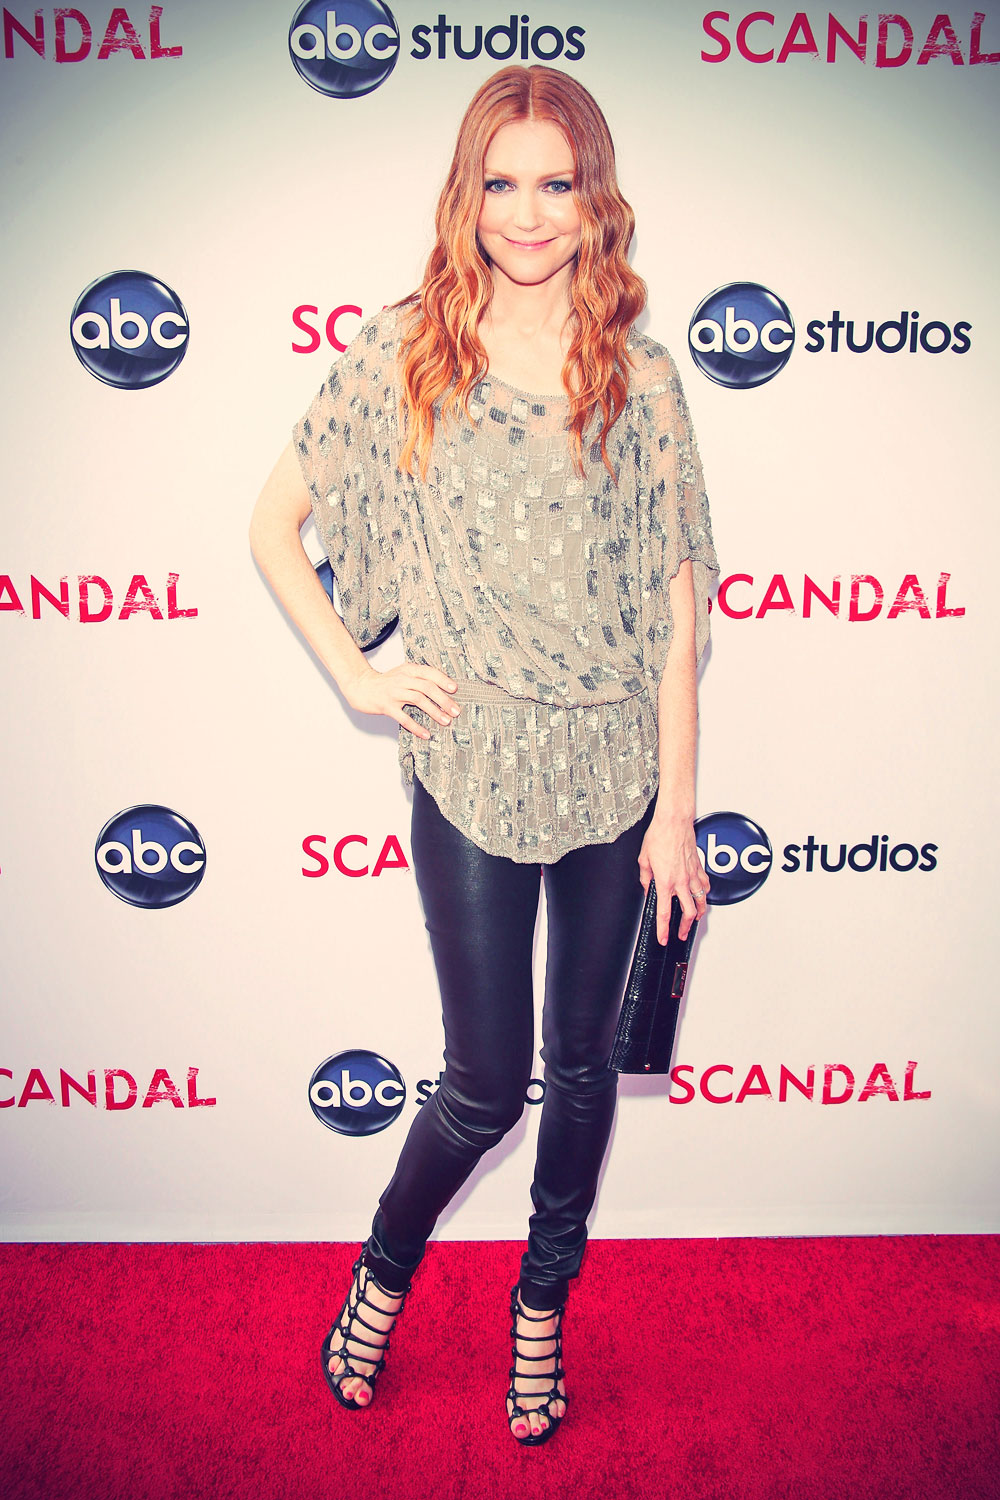 Darby Stanchfield at the Season 2 finale screening of Scandal